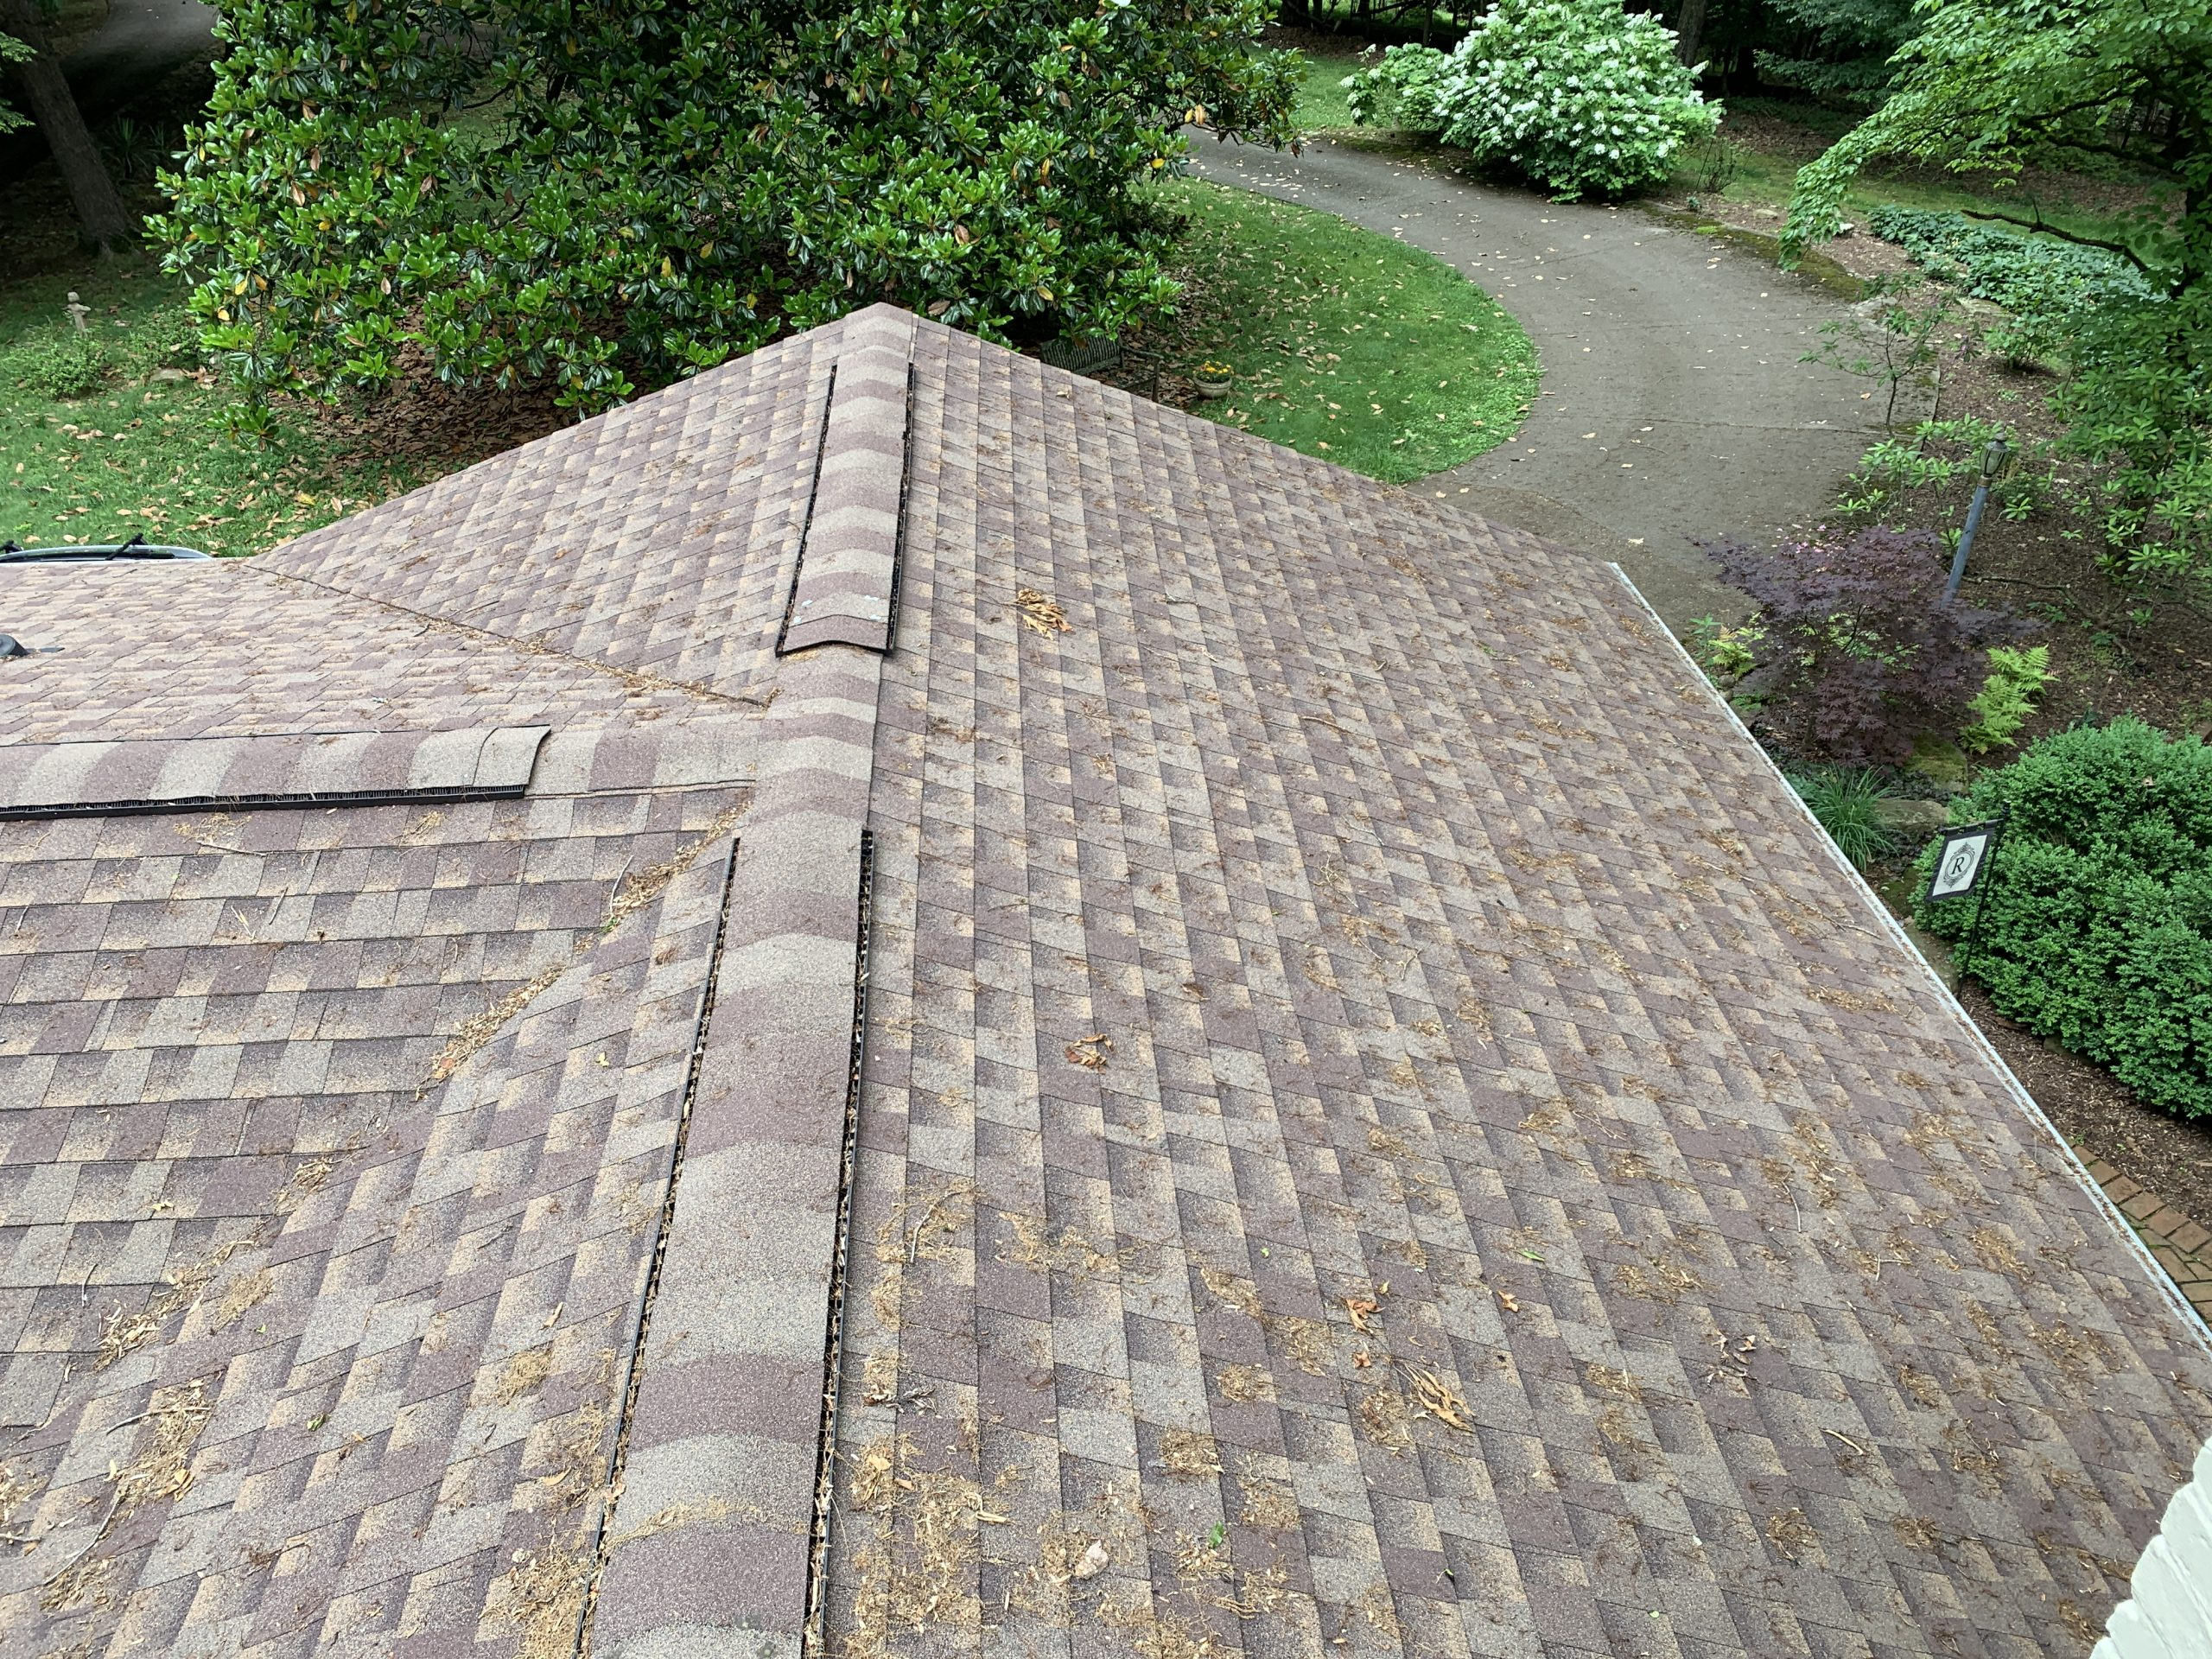 This is a view looking at a ridge of the home. The shingles are weathered wood in color.